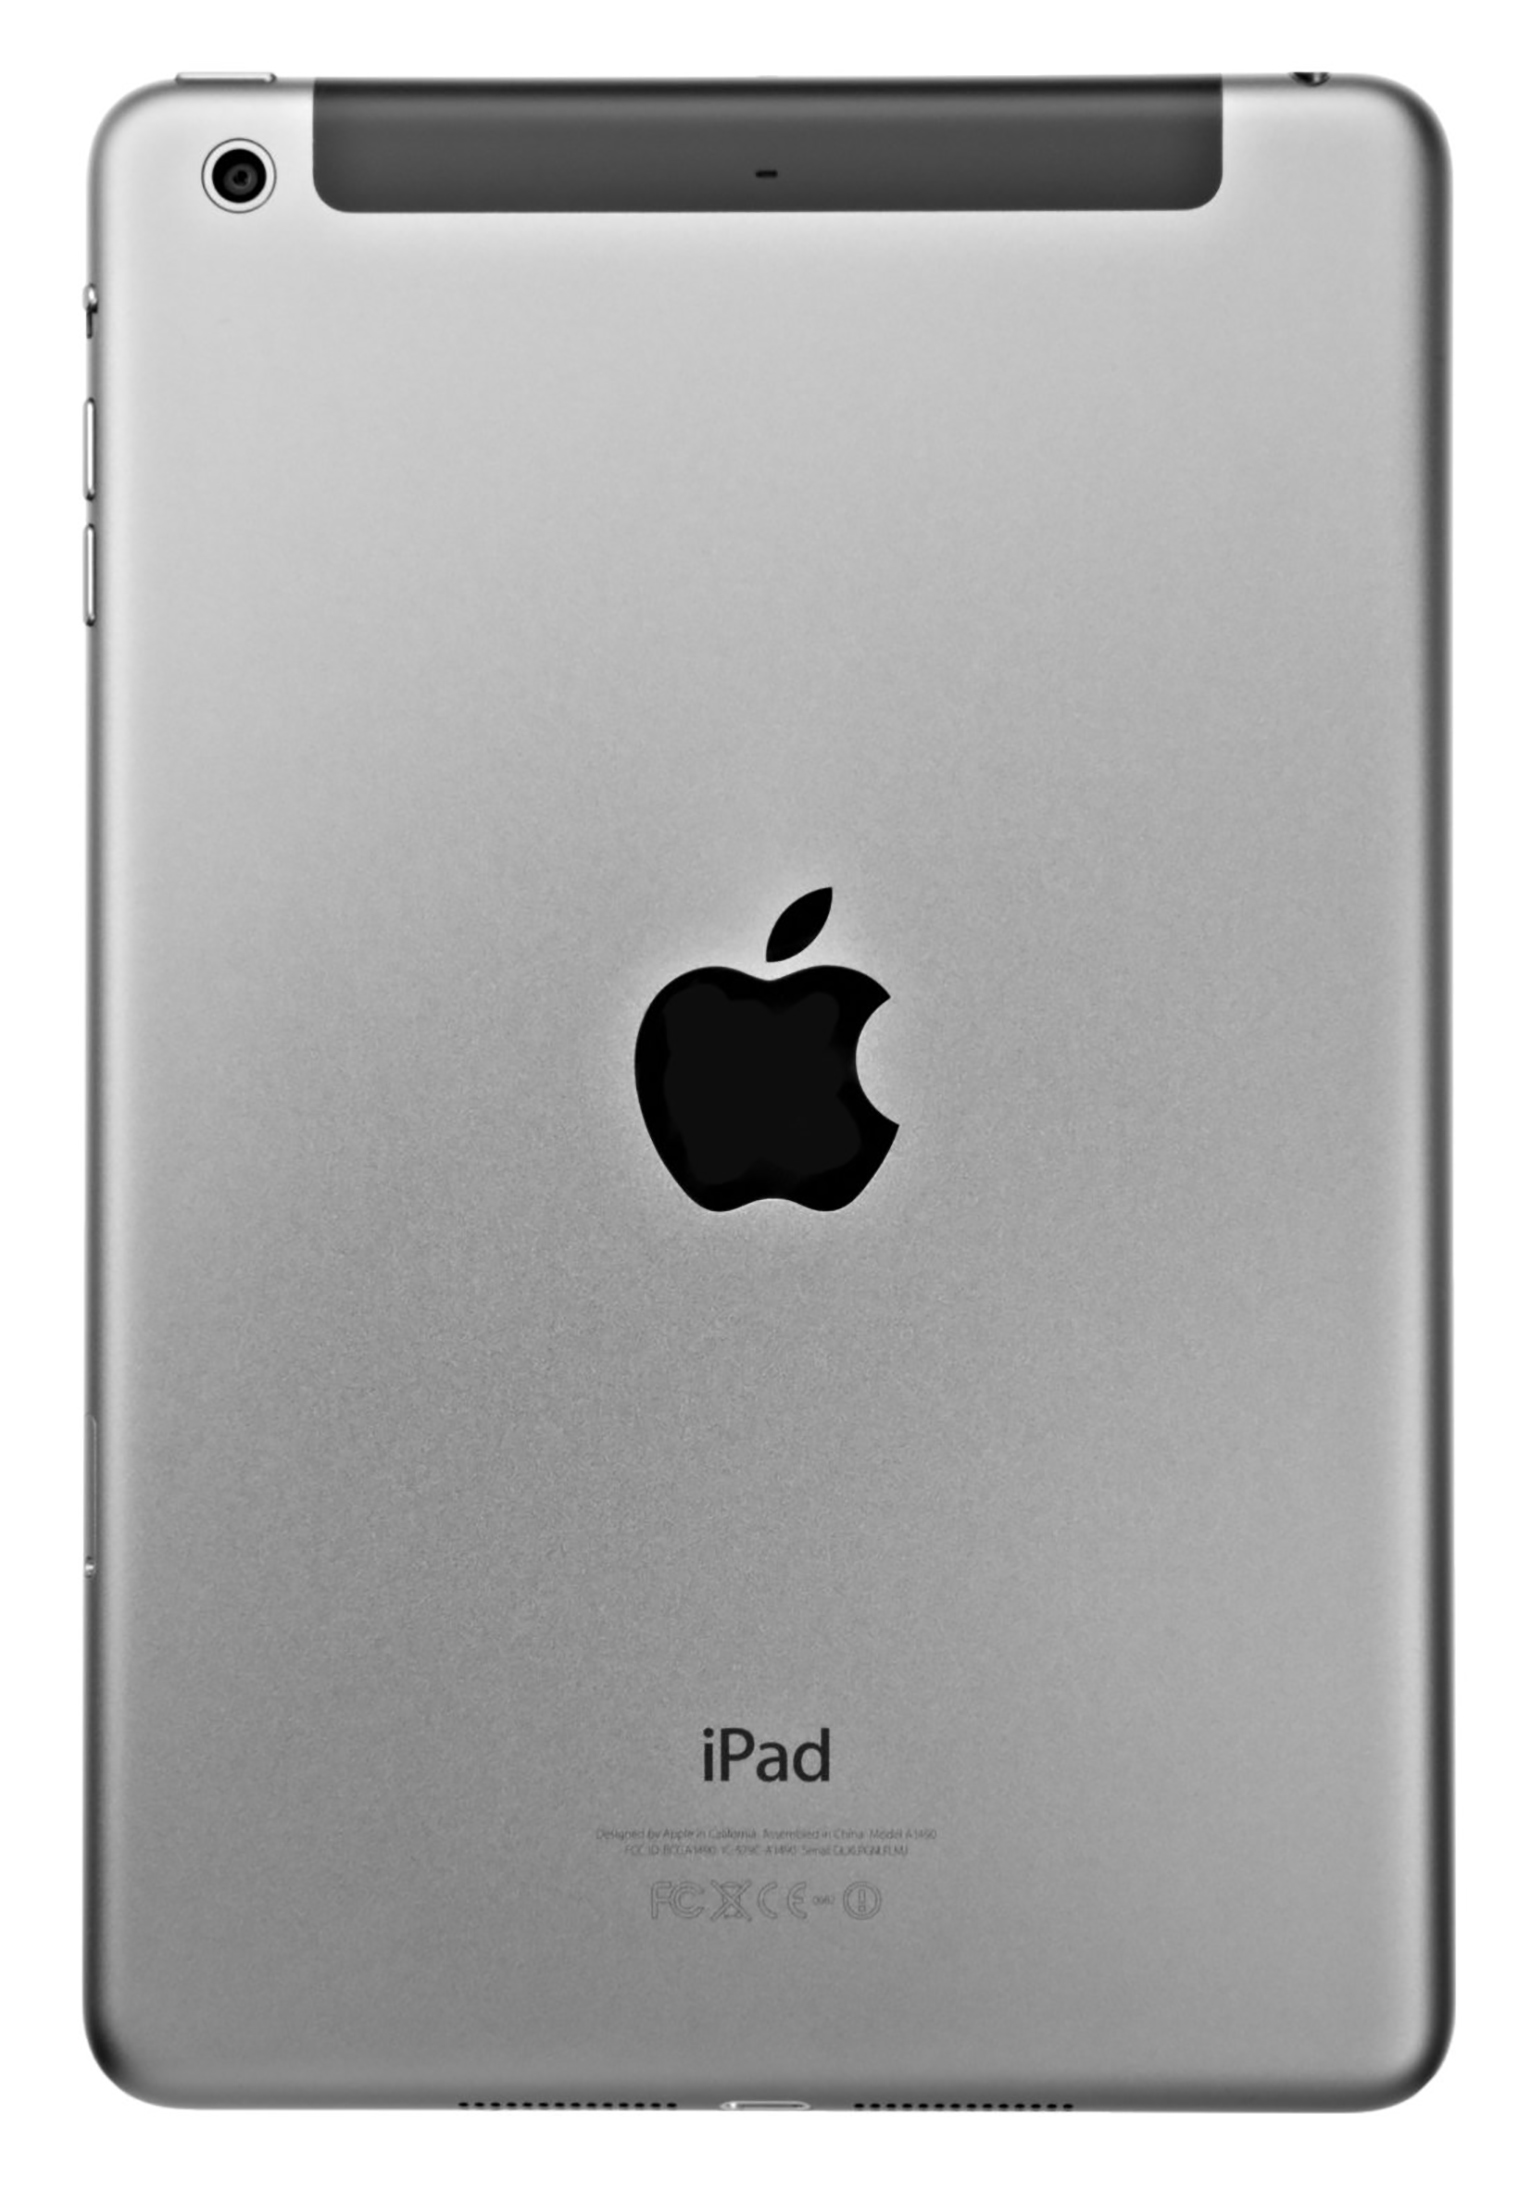 ipad 3 4g 64gb ebay